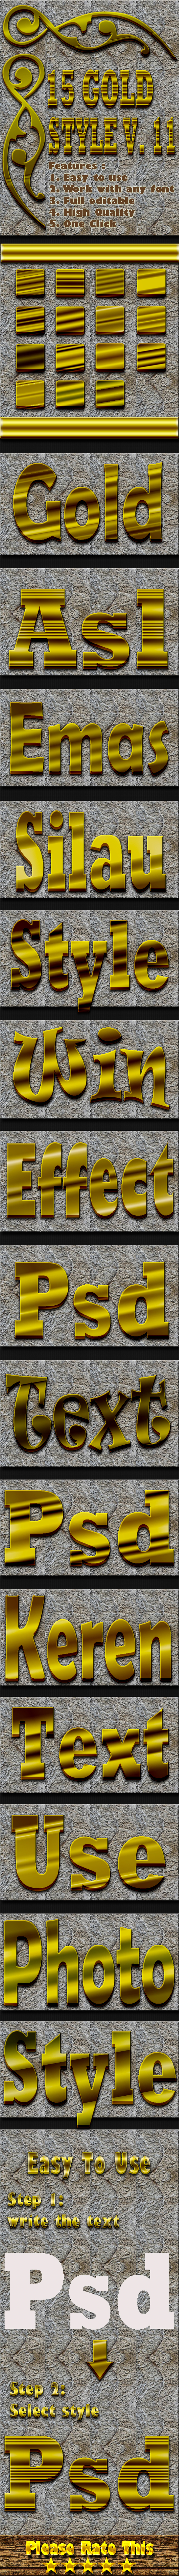 15 Gold Text Effect Style Vol 11 - Styles Photoshop